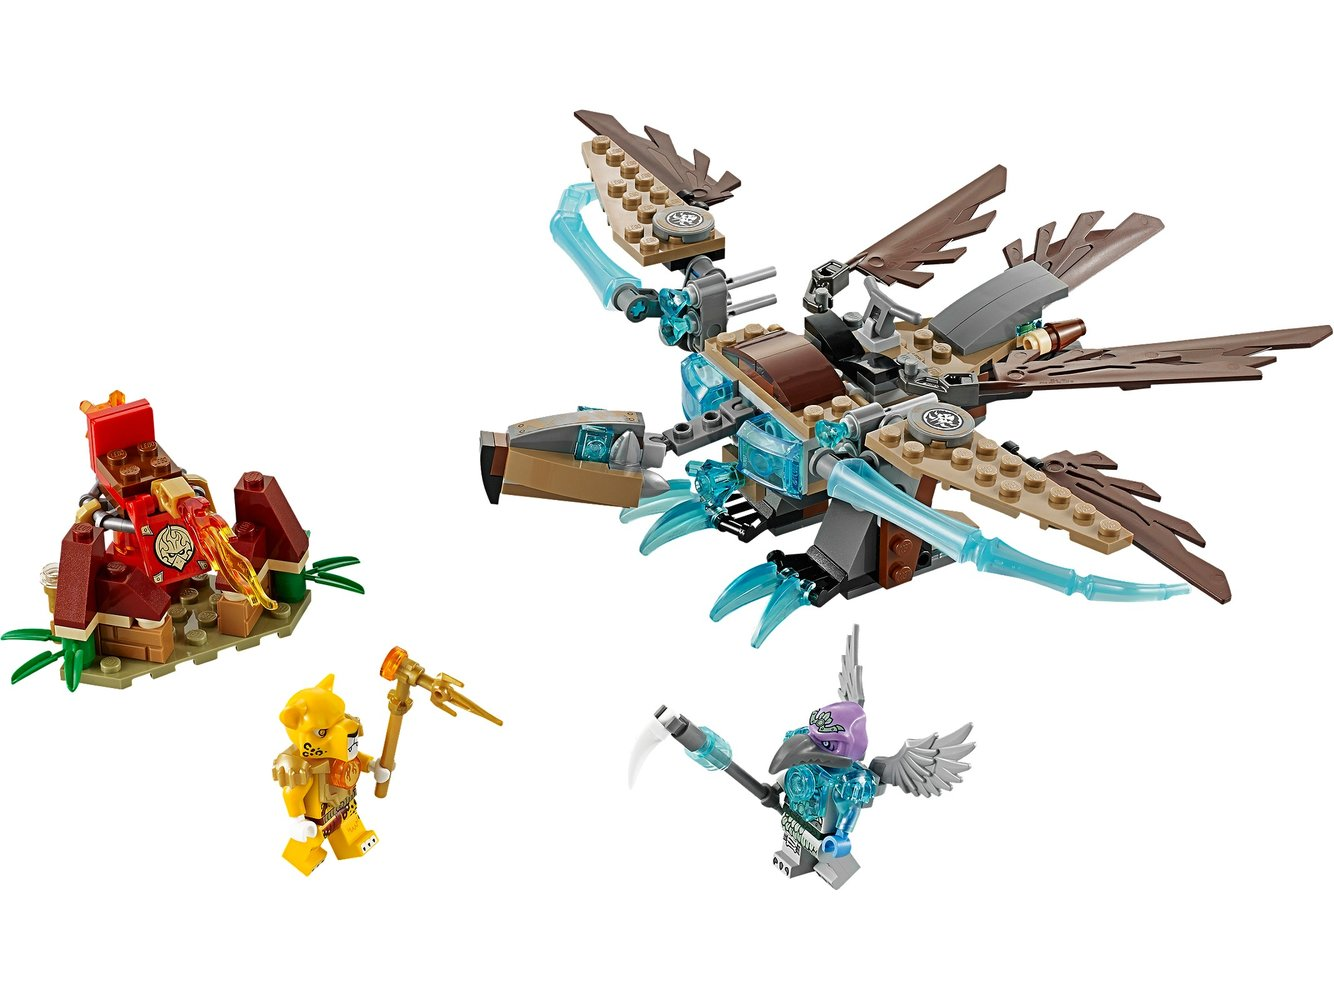 Vardy's Ice Vulture Glider